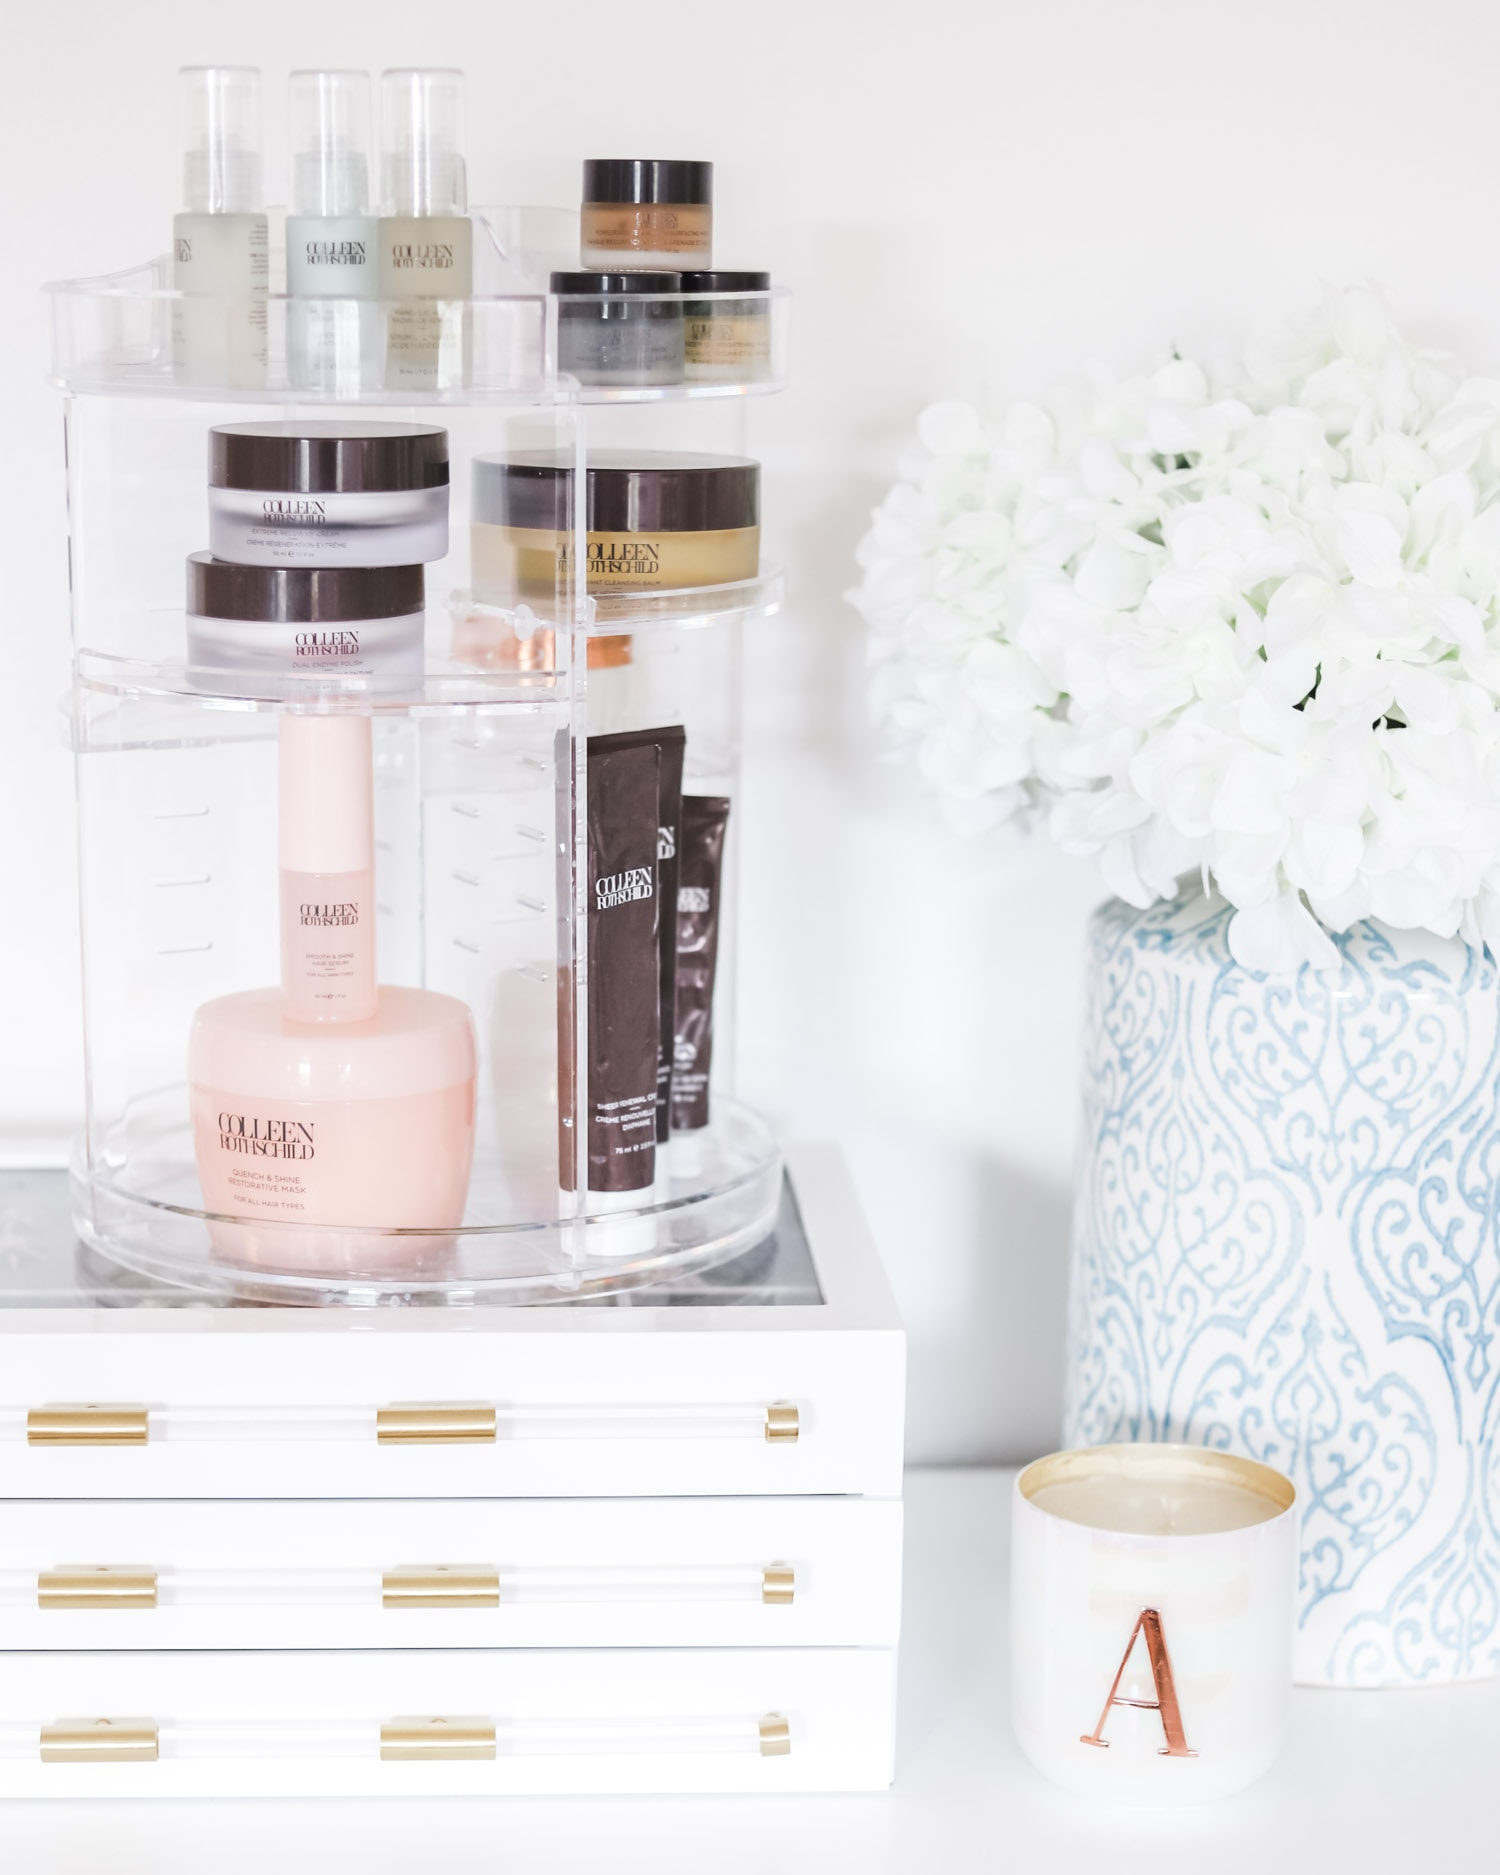 What to Buy On Amazon: the top beauty and fashion bestsellers from Amazon Prime - including this rotating acrylic beauty organizer that's under $25! | Orlando, Florida beauty and fashion blogger Ashley Brooke Nicholas